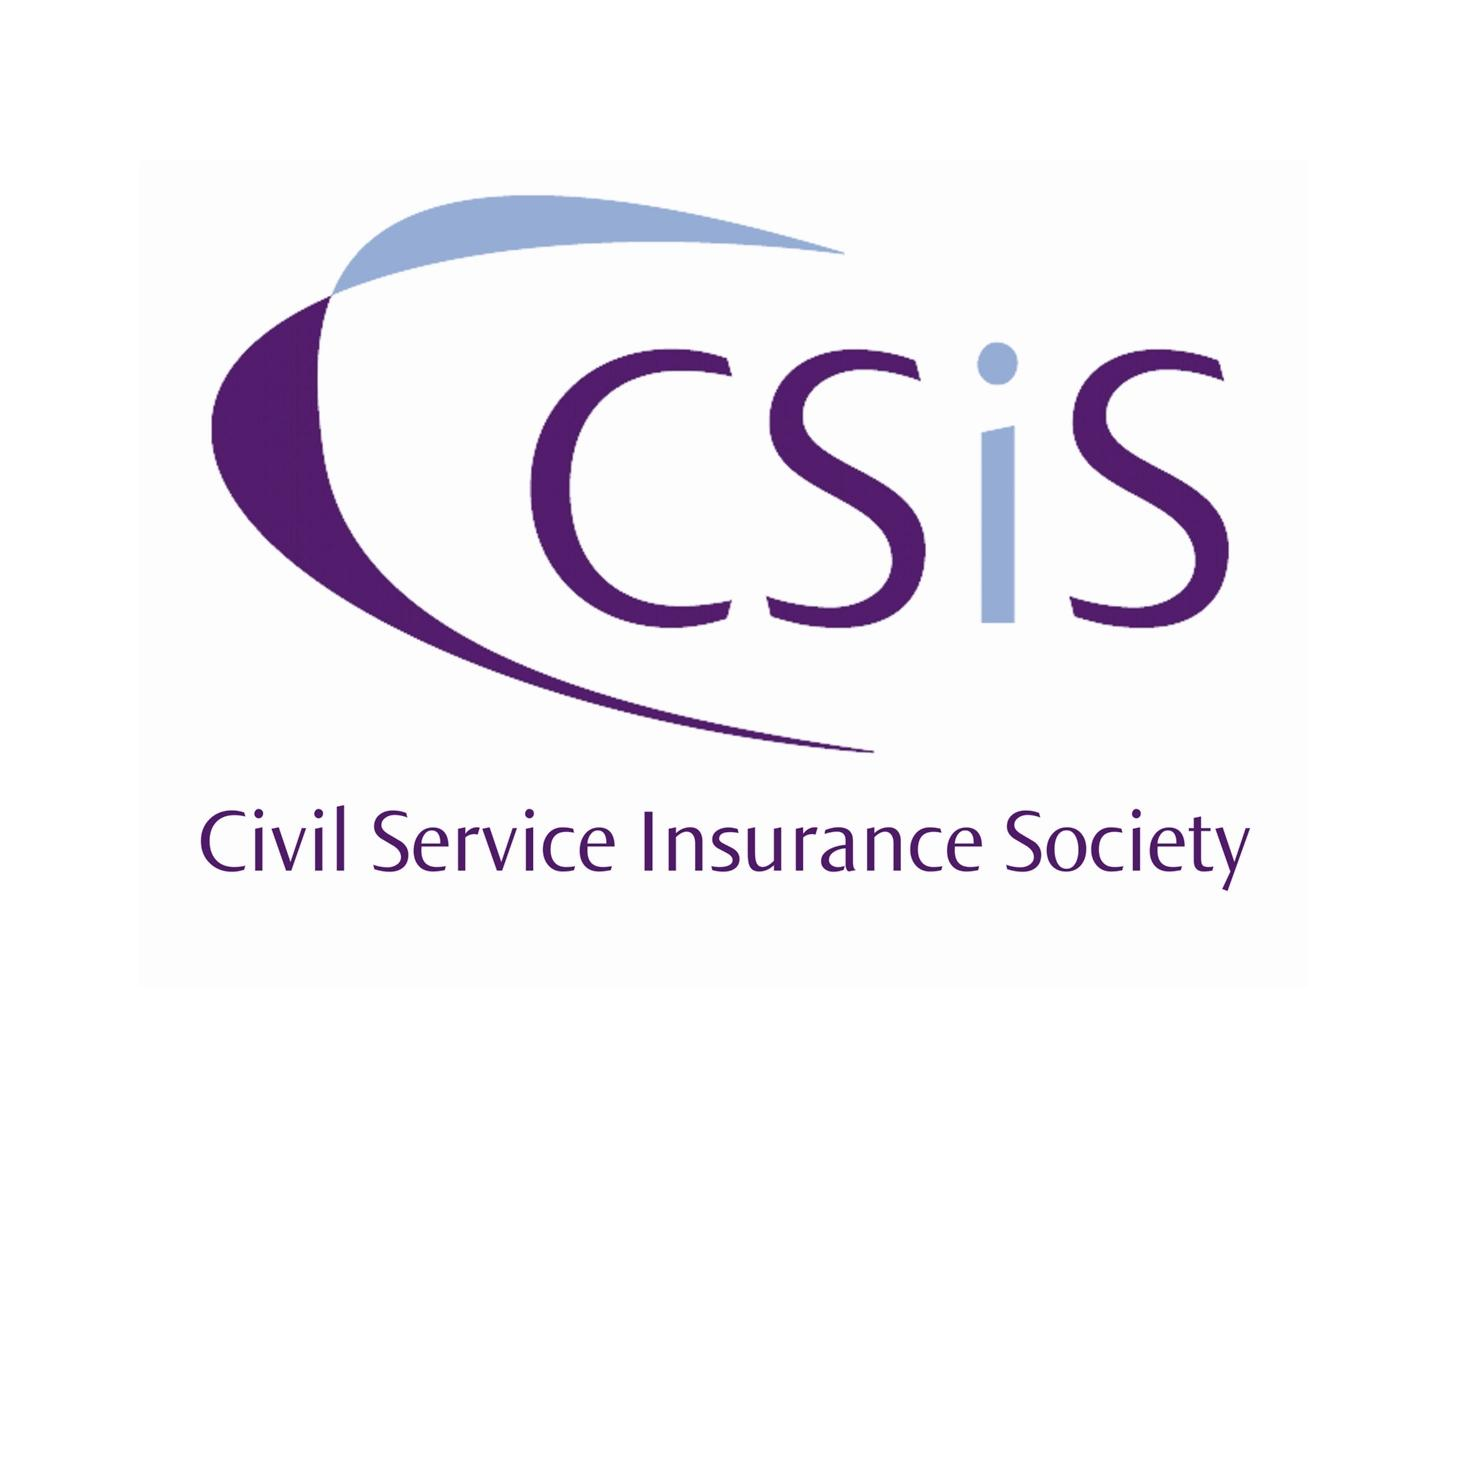 Civil Service Insurance Society